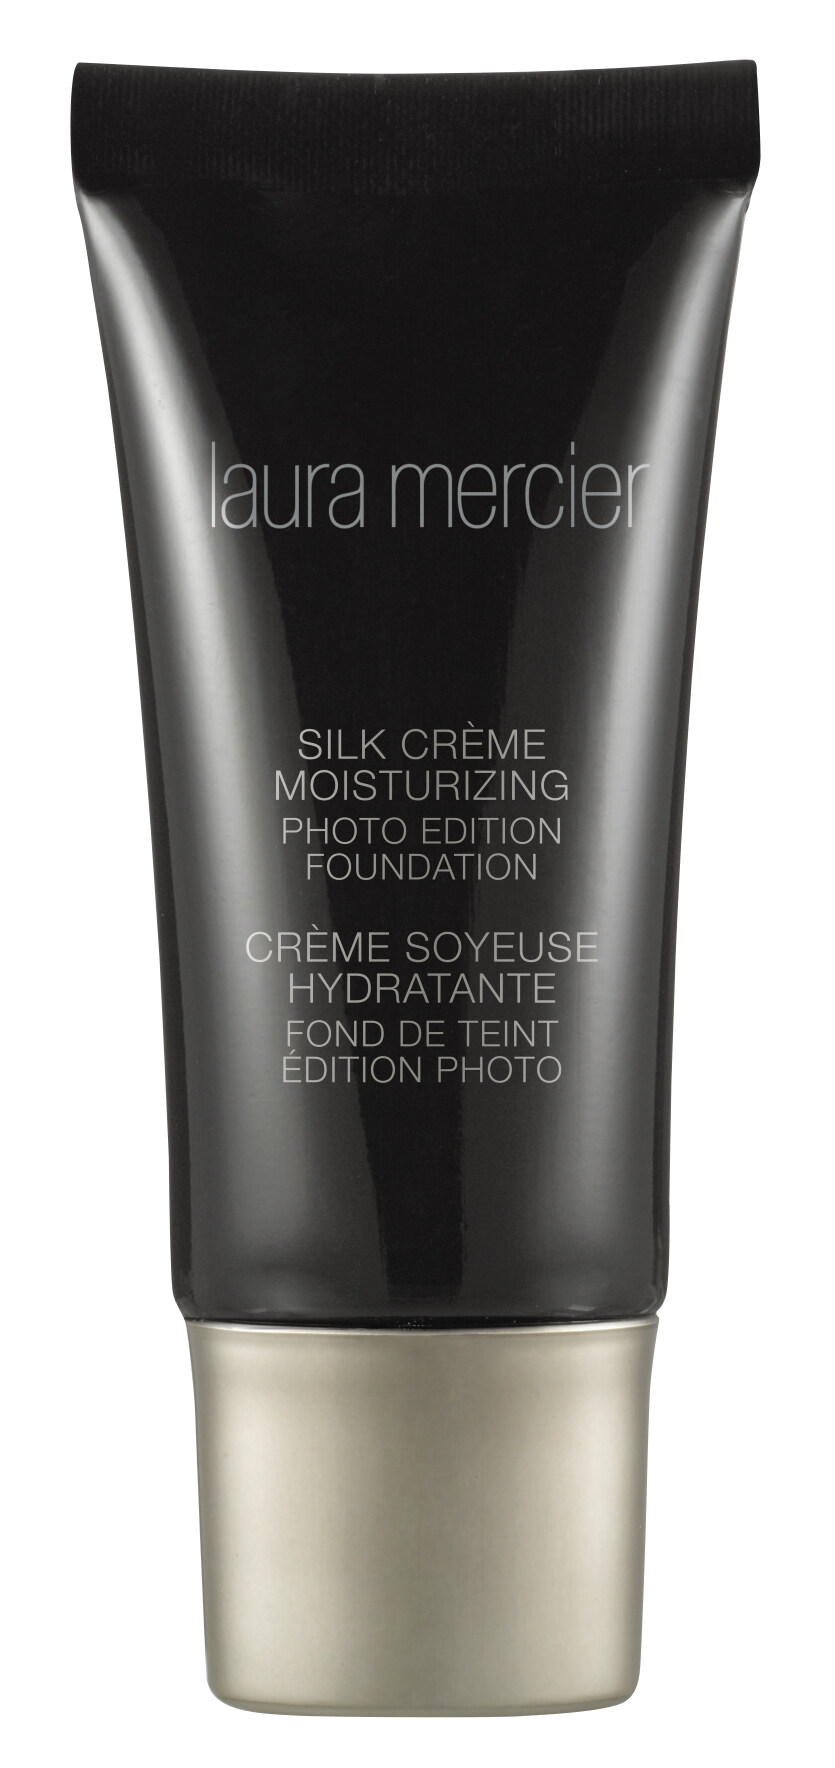 Laura Mercier Silk Crème Moisturizing Photo Edition Foundation($450)